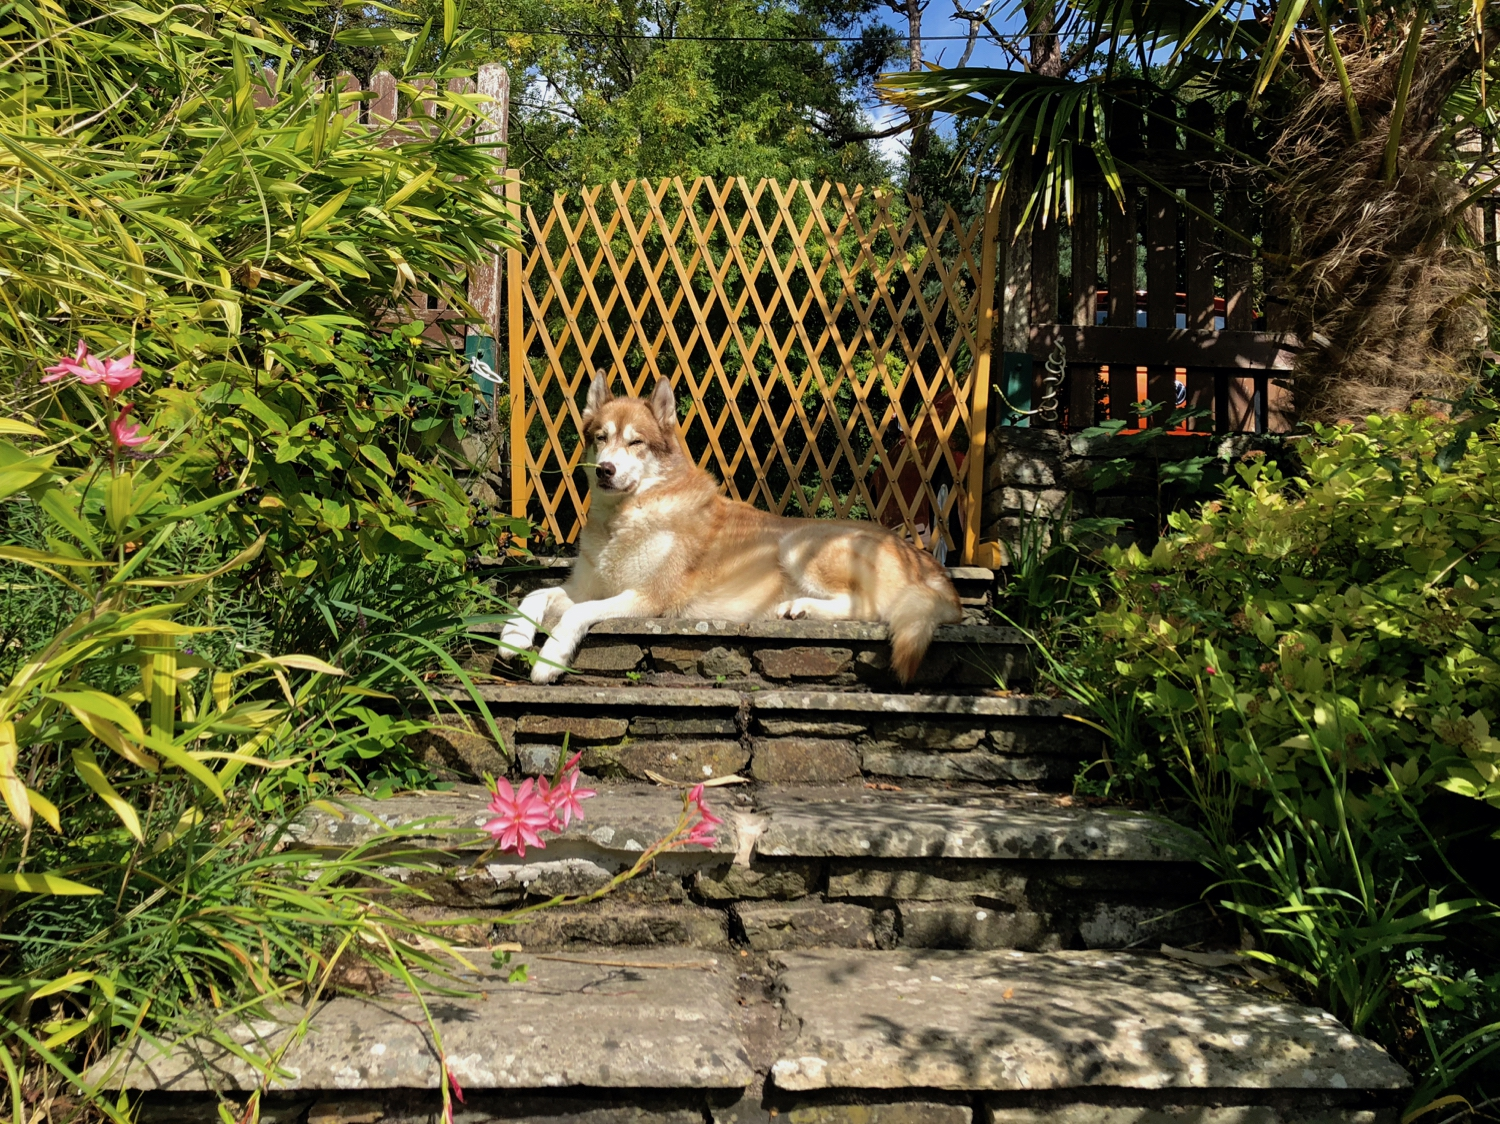 Oskar the huskamute lounging in a statuesque manner on the top of some steps, surrounded by plants and flowers.